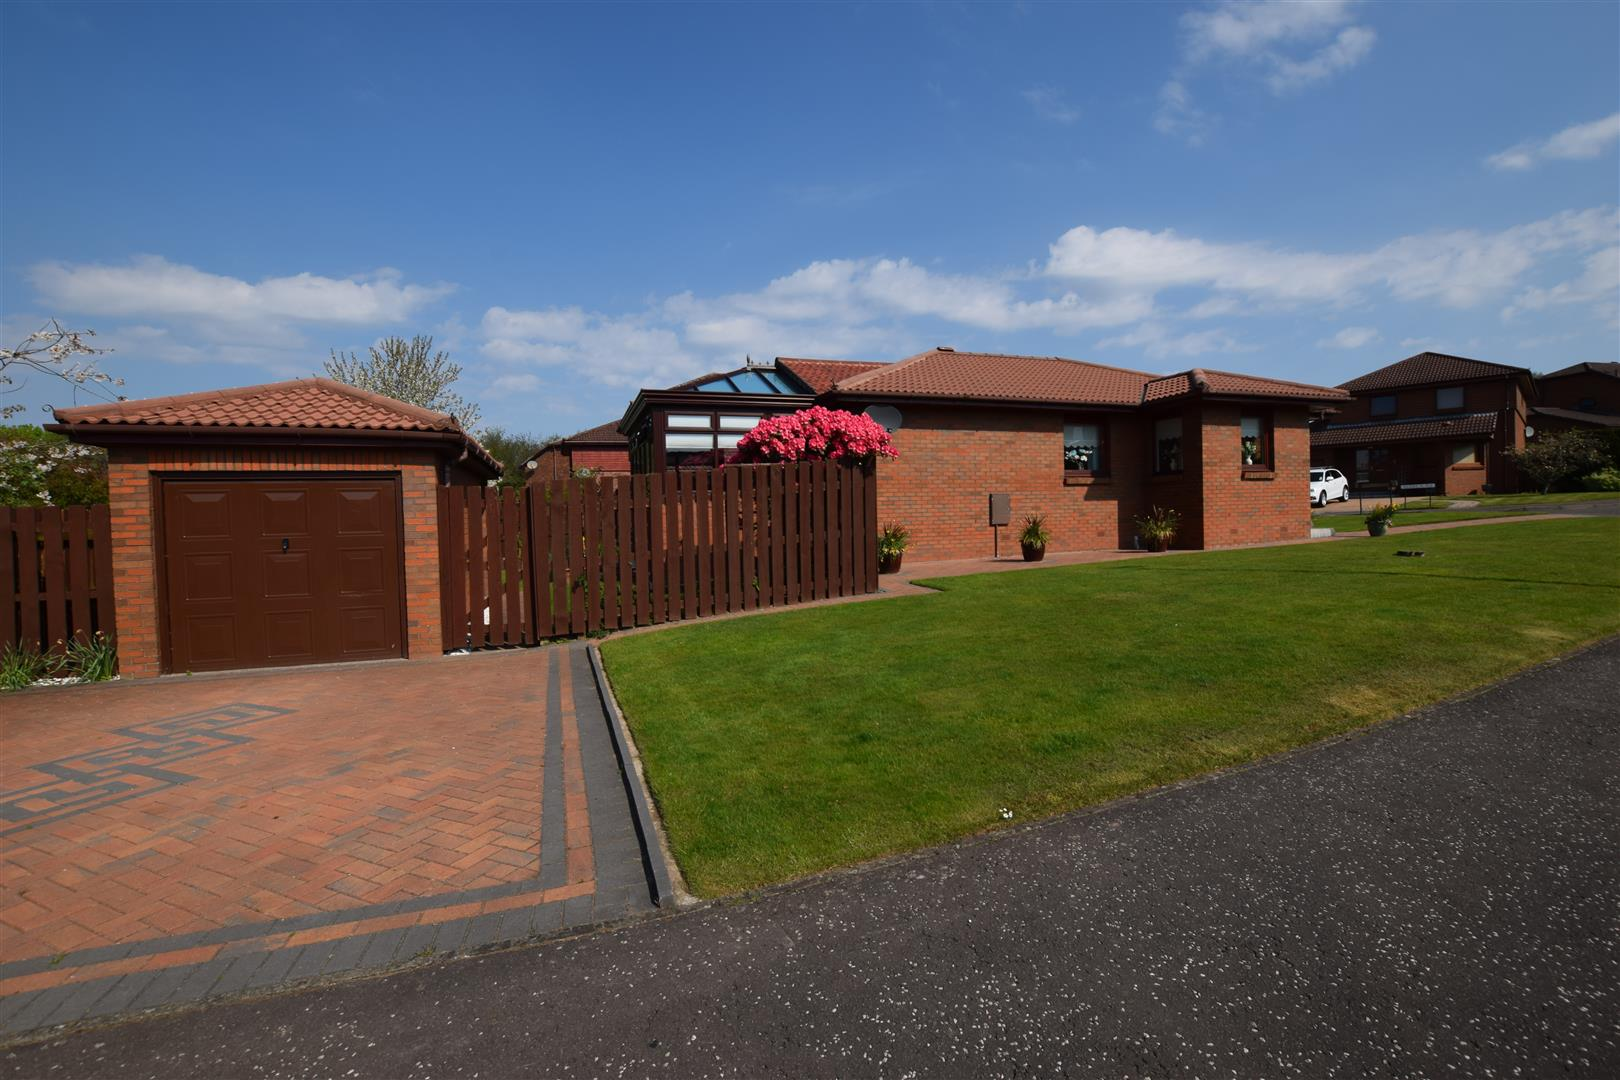 1, Selkirk Place, Perth, Perthshire, PH1 1SH, UK